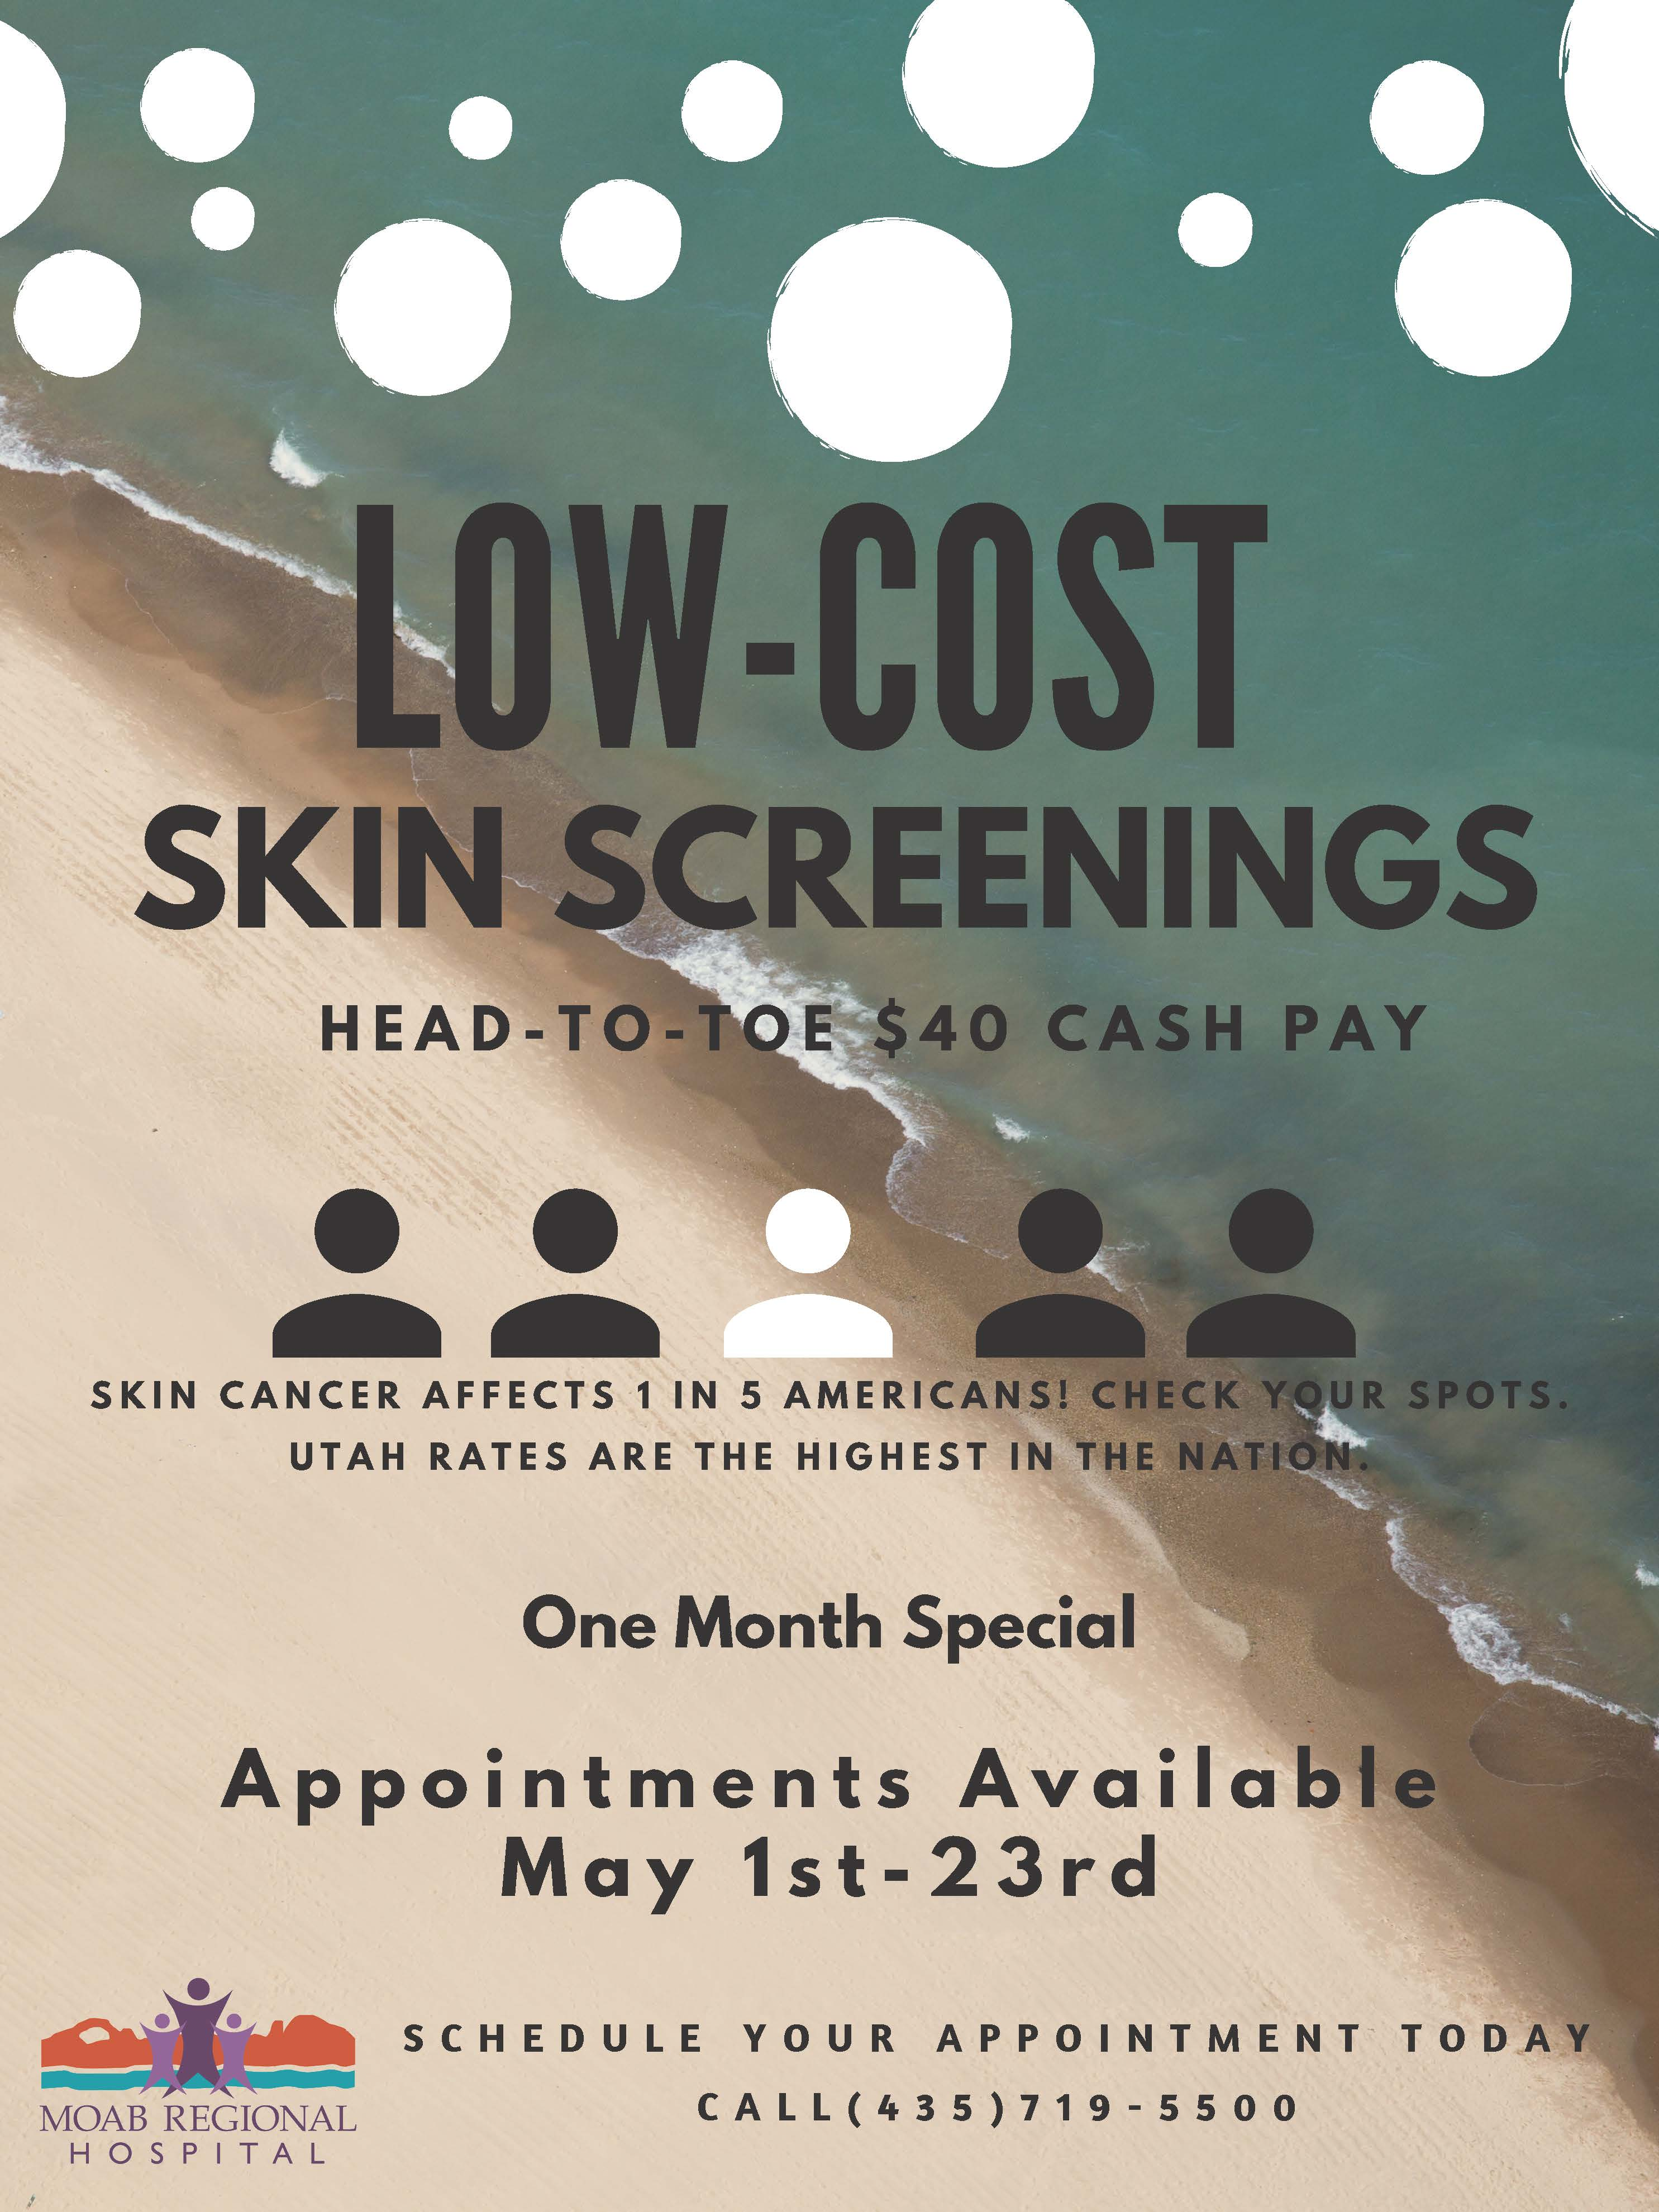 Low-Cost Skin Screening